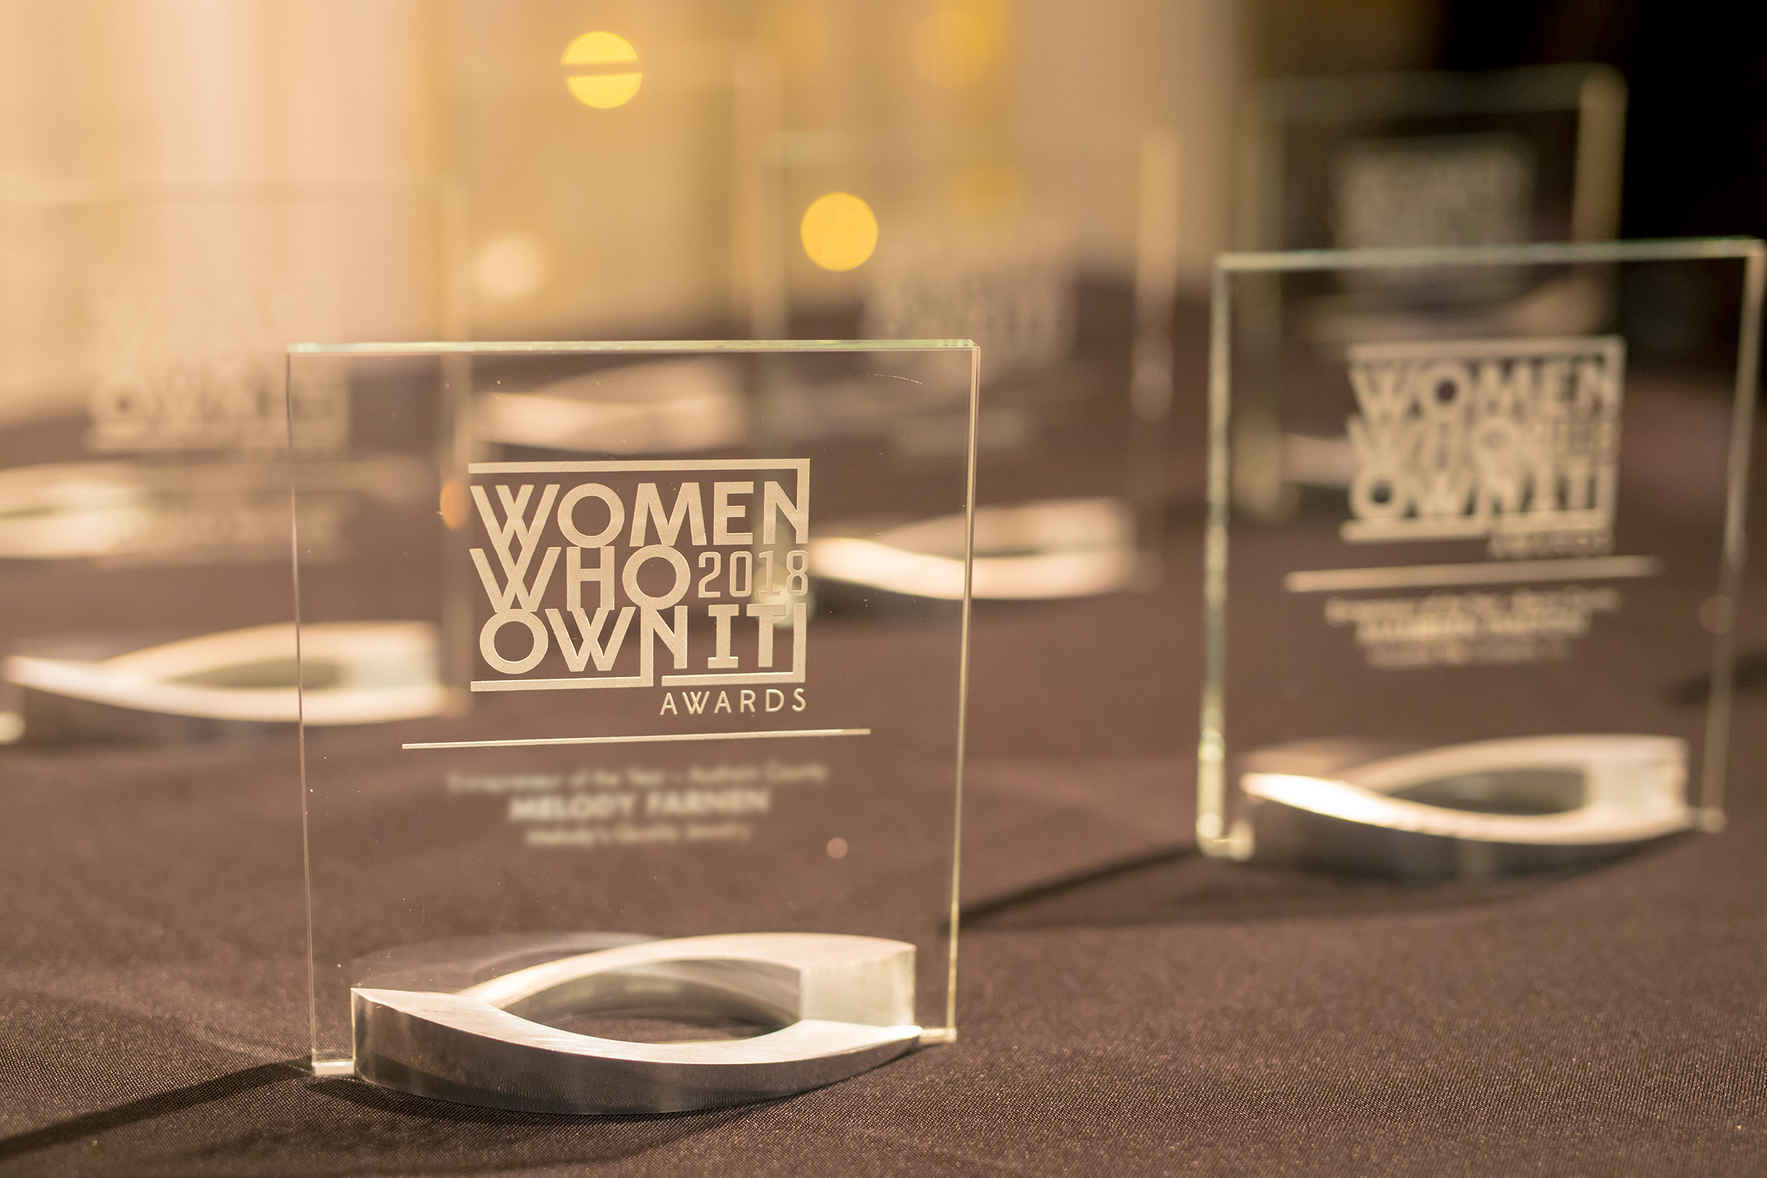 Women Who Own It Awards 2019  image